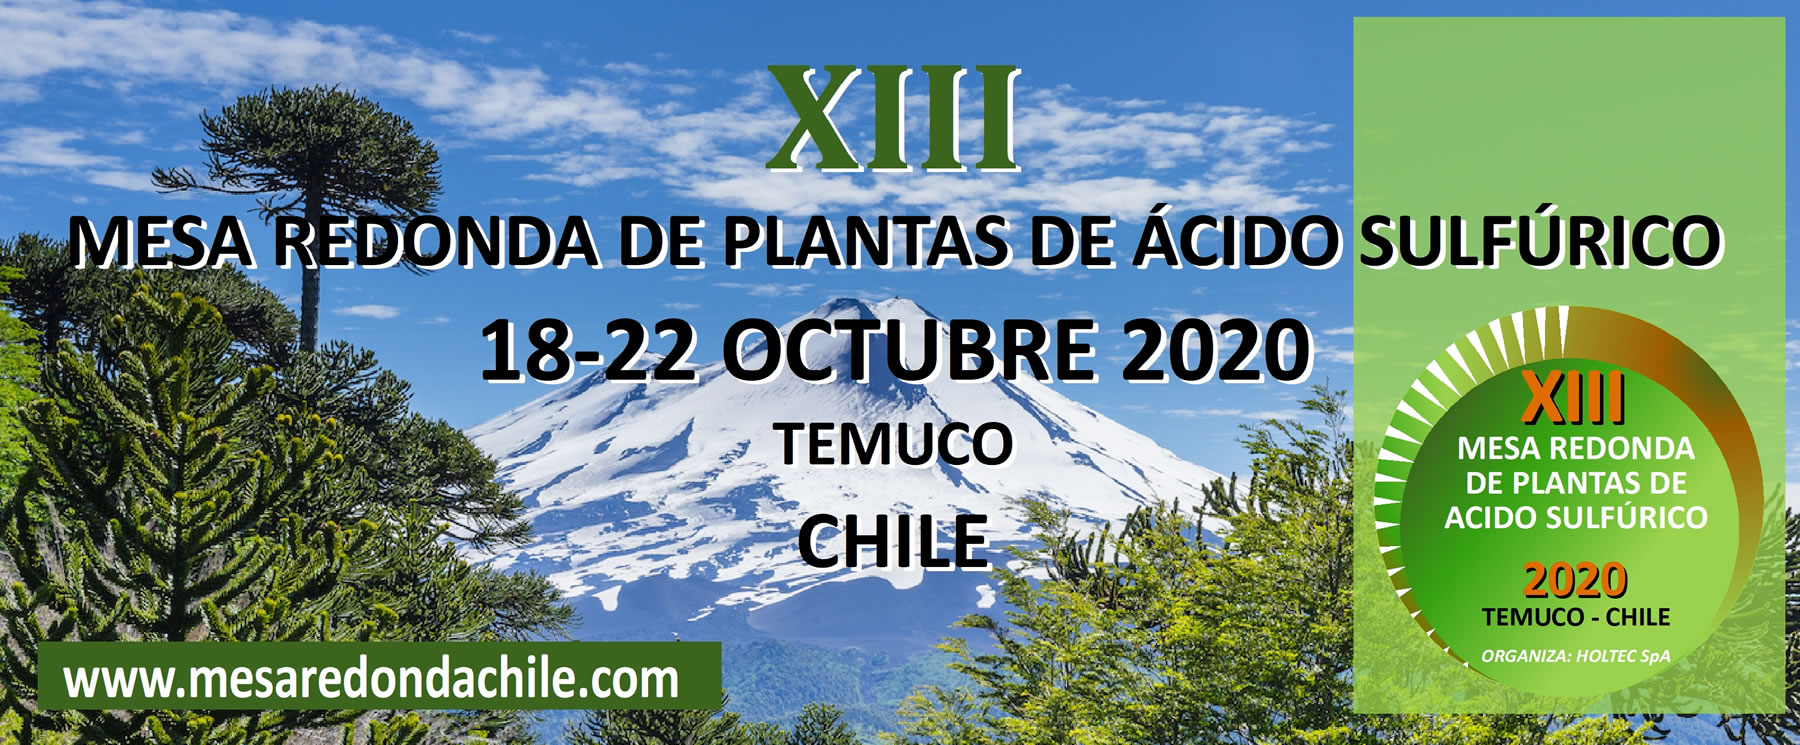 XII Round Table of Sulfuric Acid Plants • 21 - 25/10/2018 • Puerto Varas, Chile